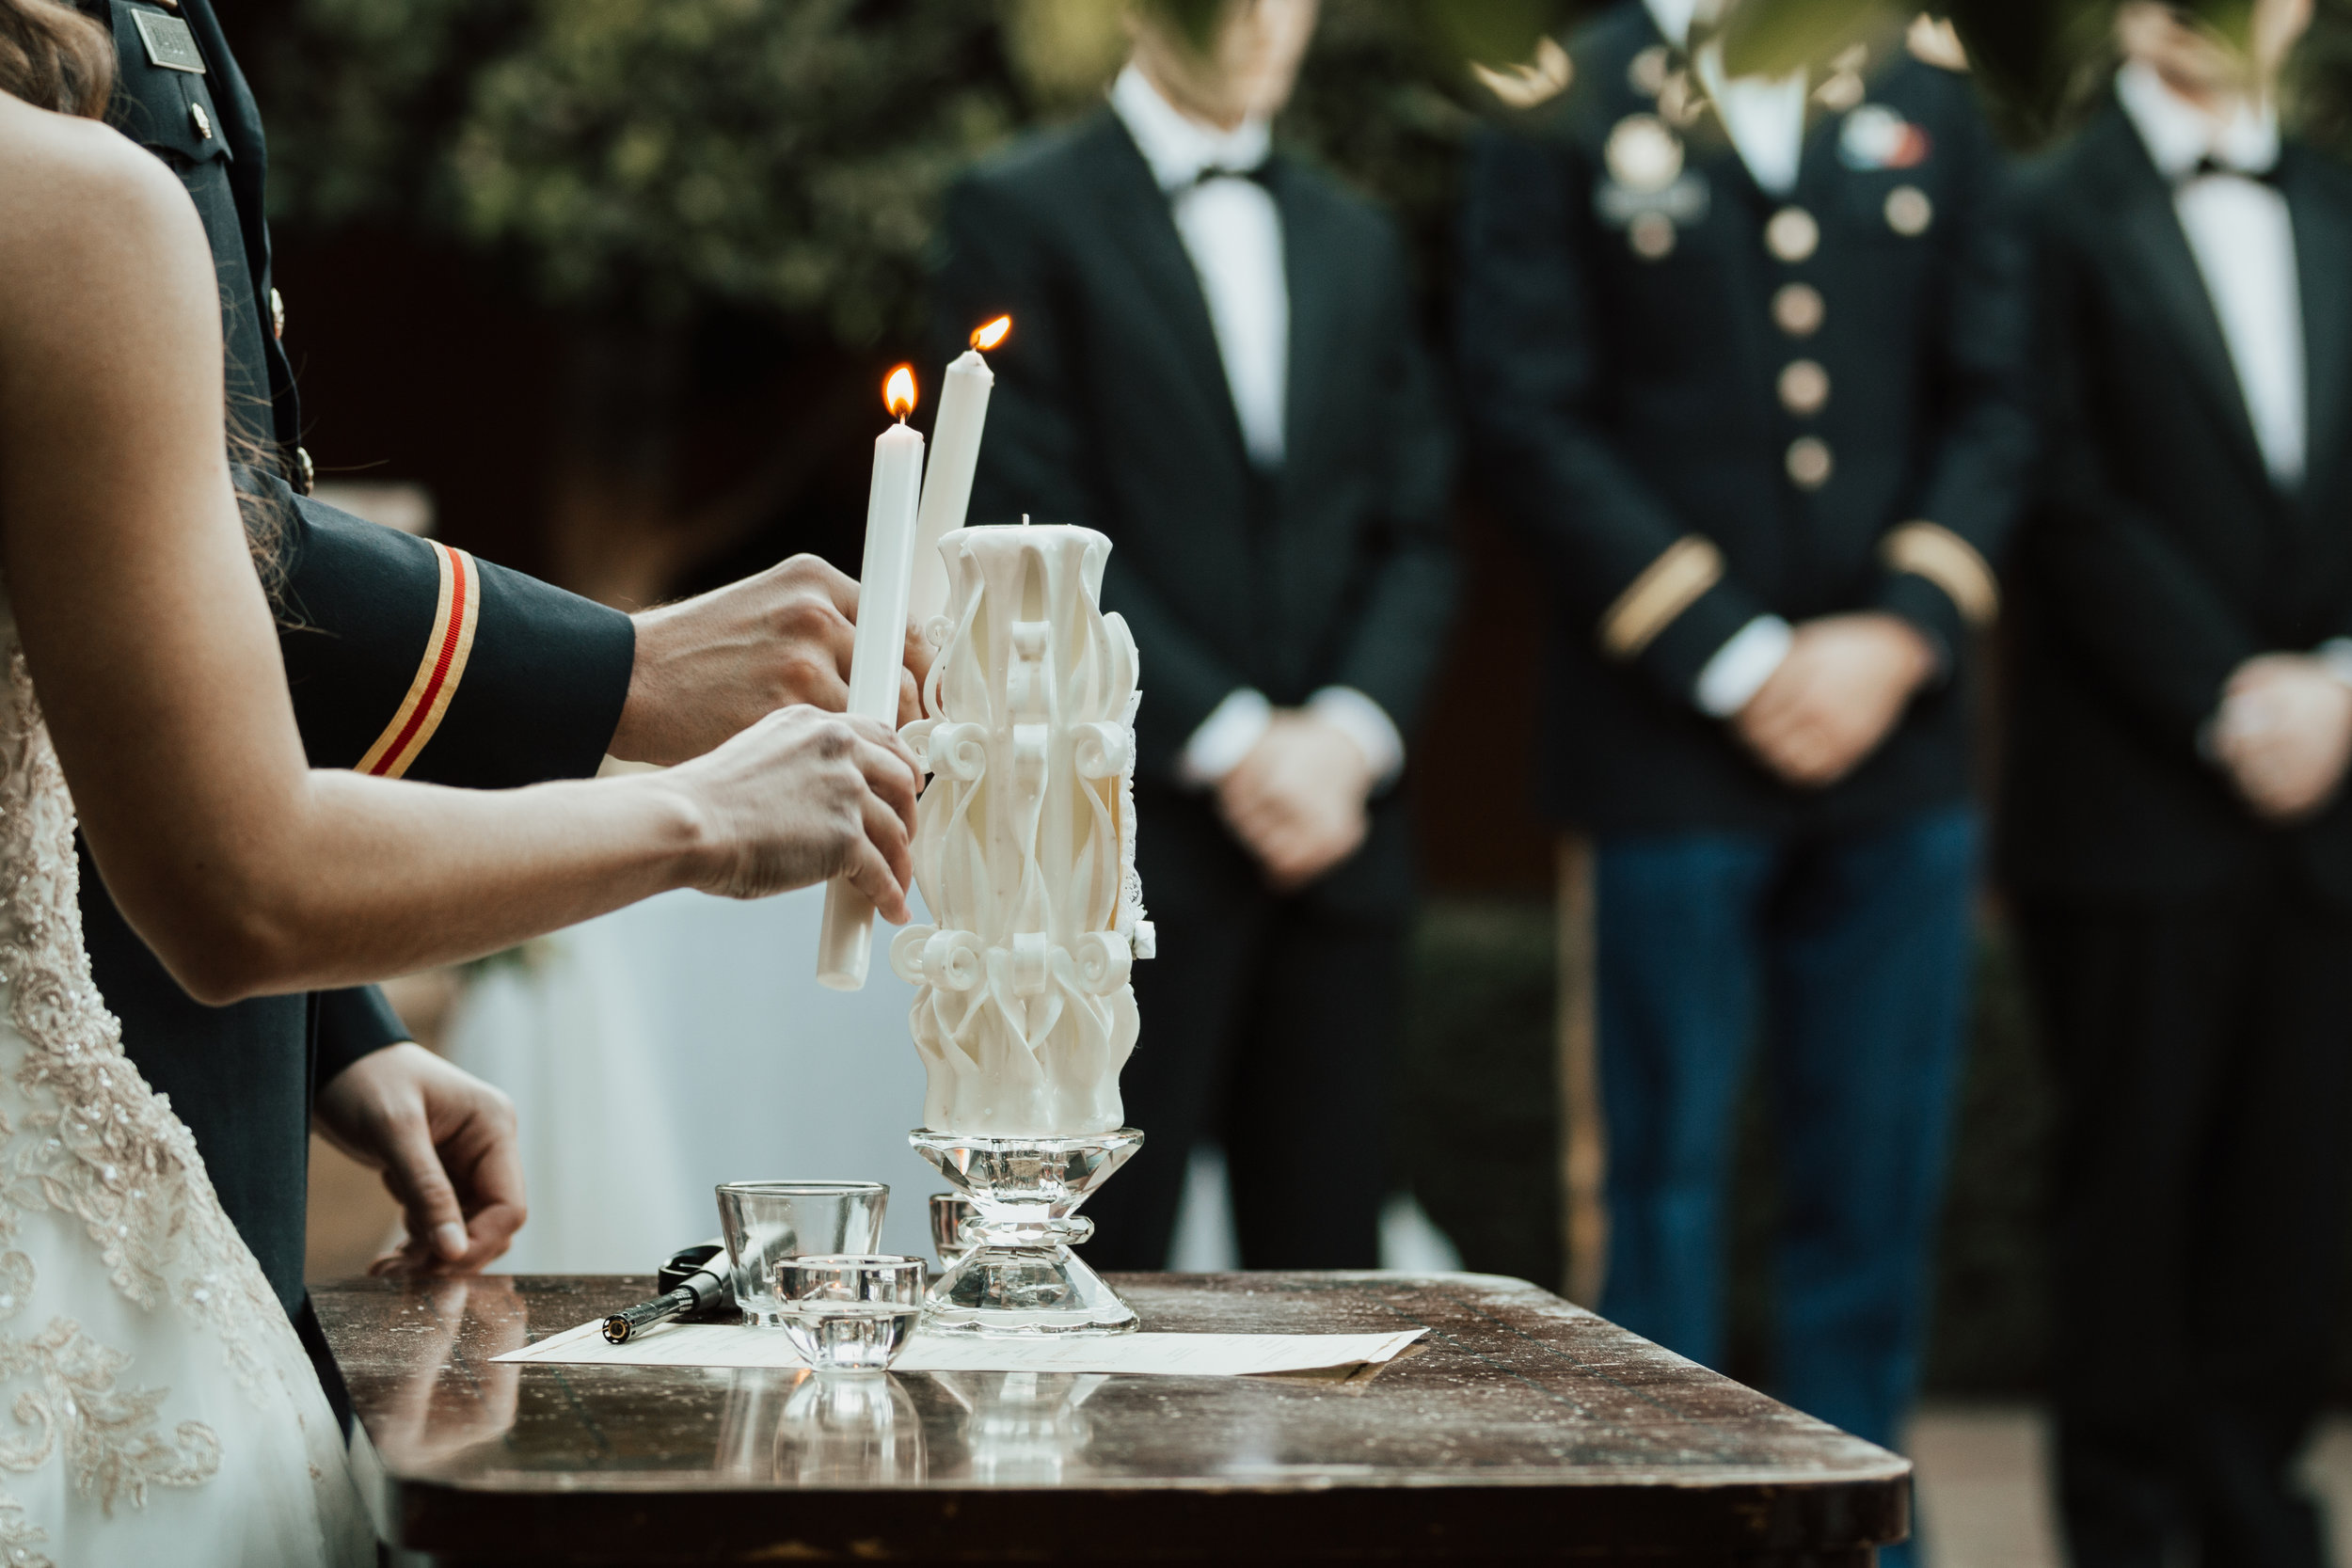 Candle Lighting during Ceremony